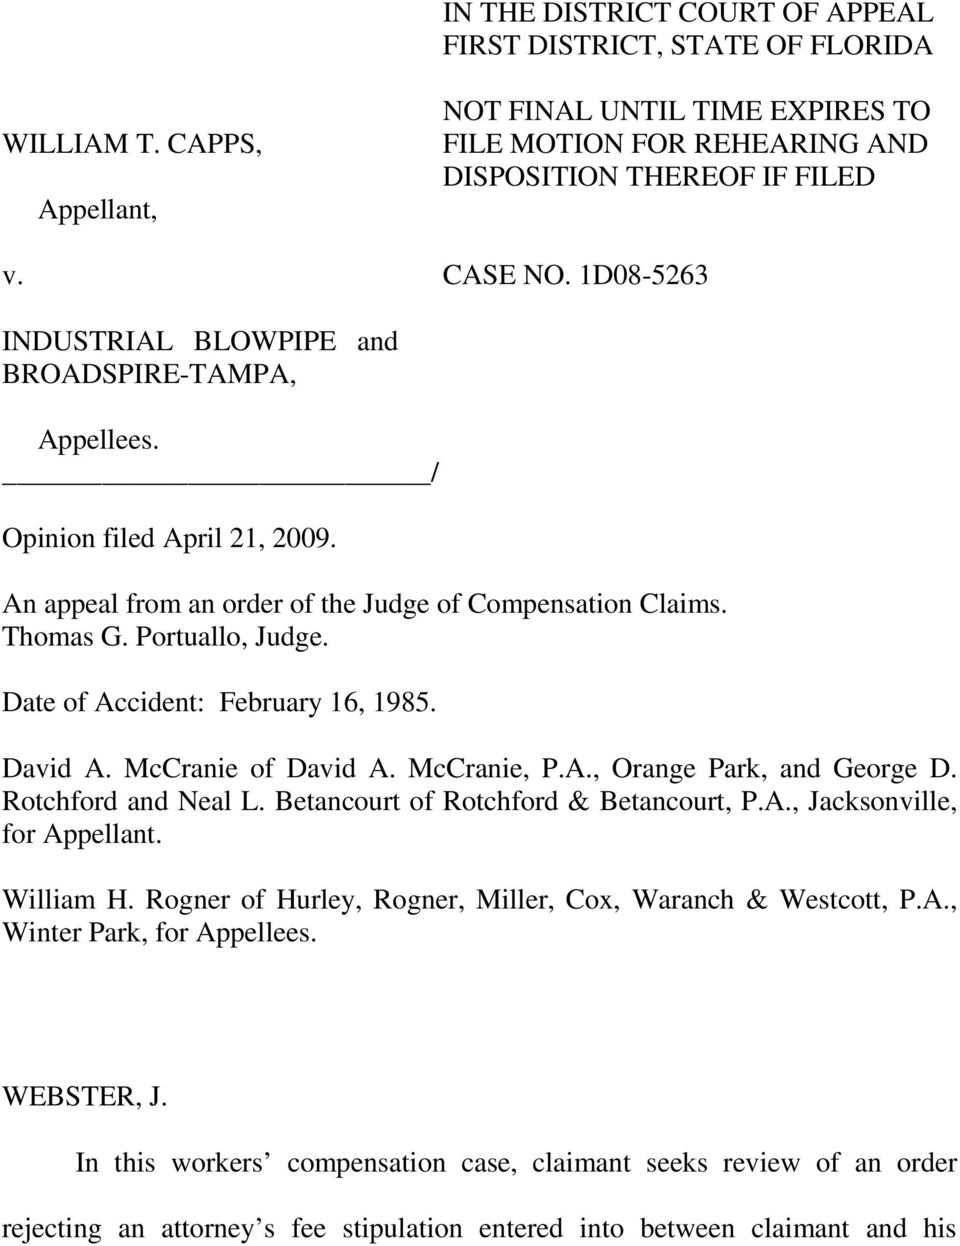 Date of Accident: February 16, 1985. David A. McCranie of David A. McCranie, P.A., Orange Park, and George D. Rotchford and Neal L. Betancourt of Rotchford & Betancourt, P.A., Jacksonville, for Appellant.